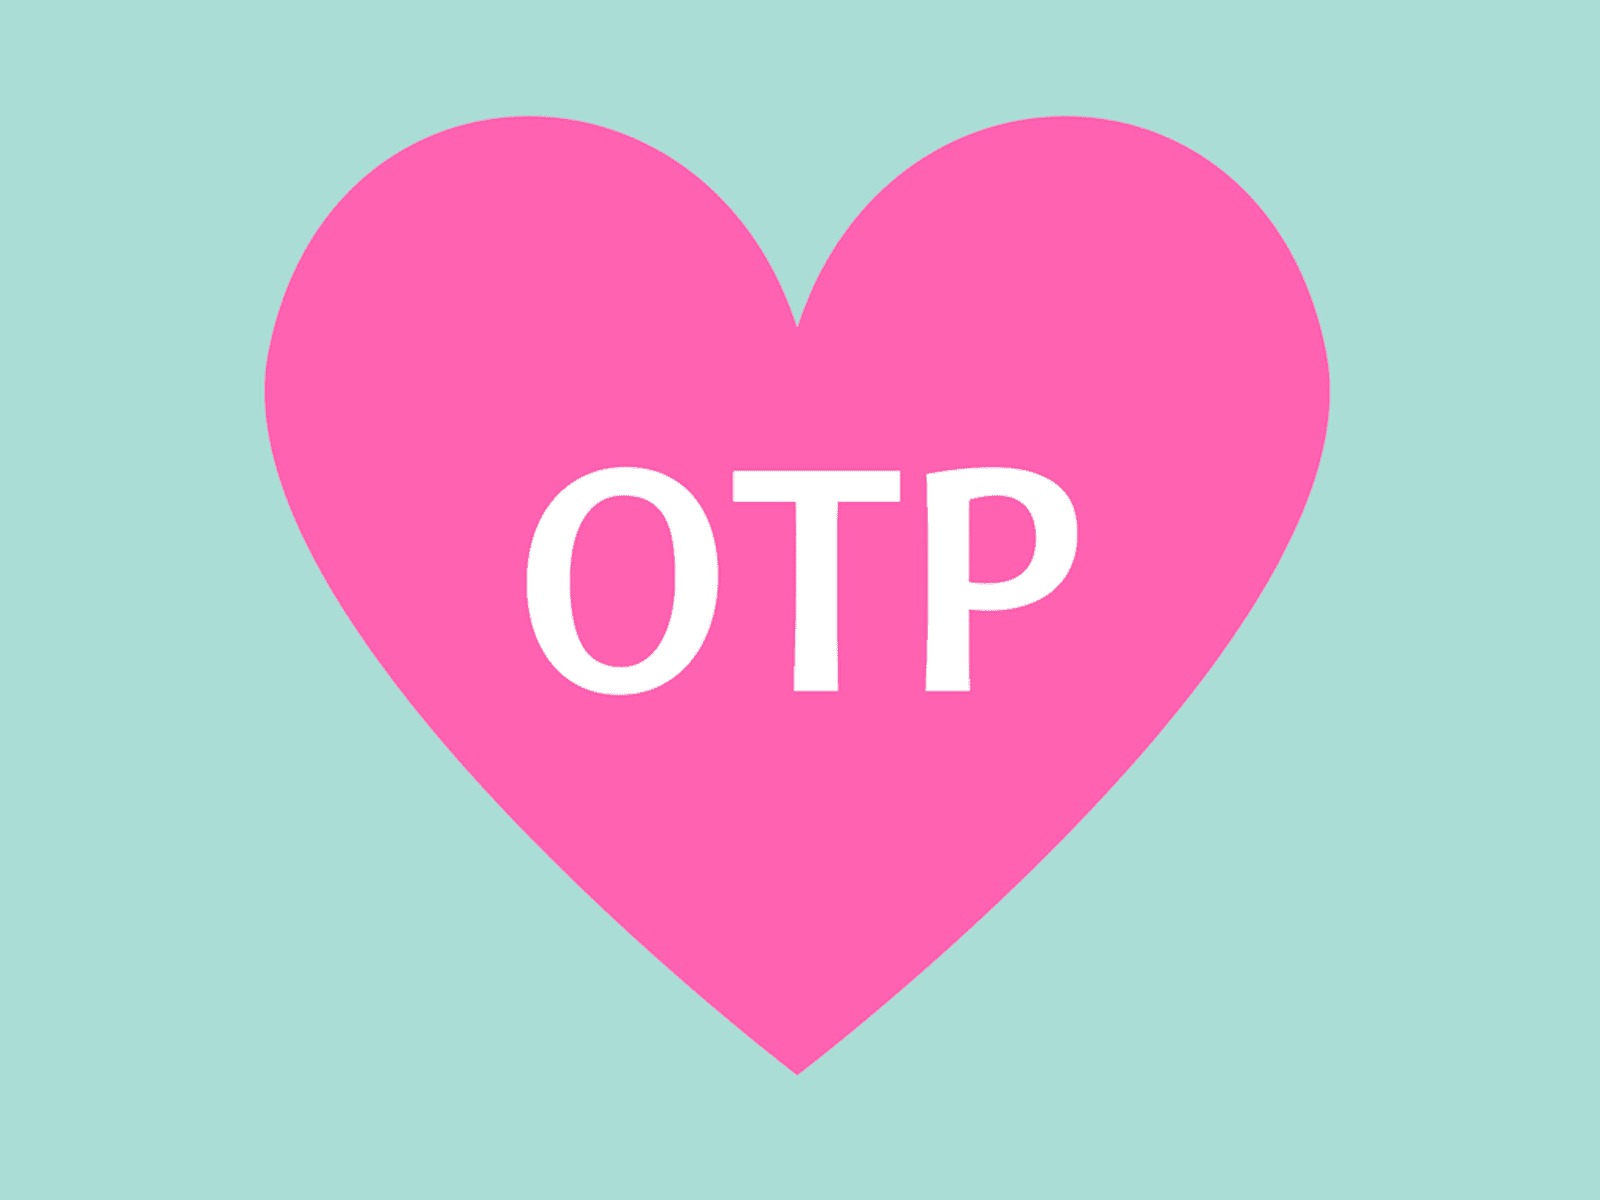 10 emoji meanings that dont mean what you think they mean tumblr ling what otp stands for and what it means biocorpaavc